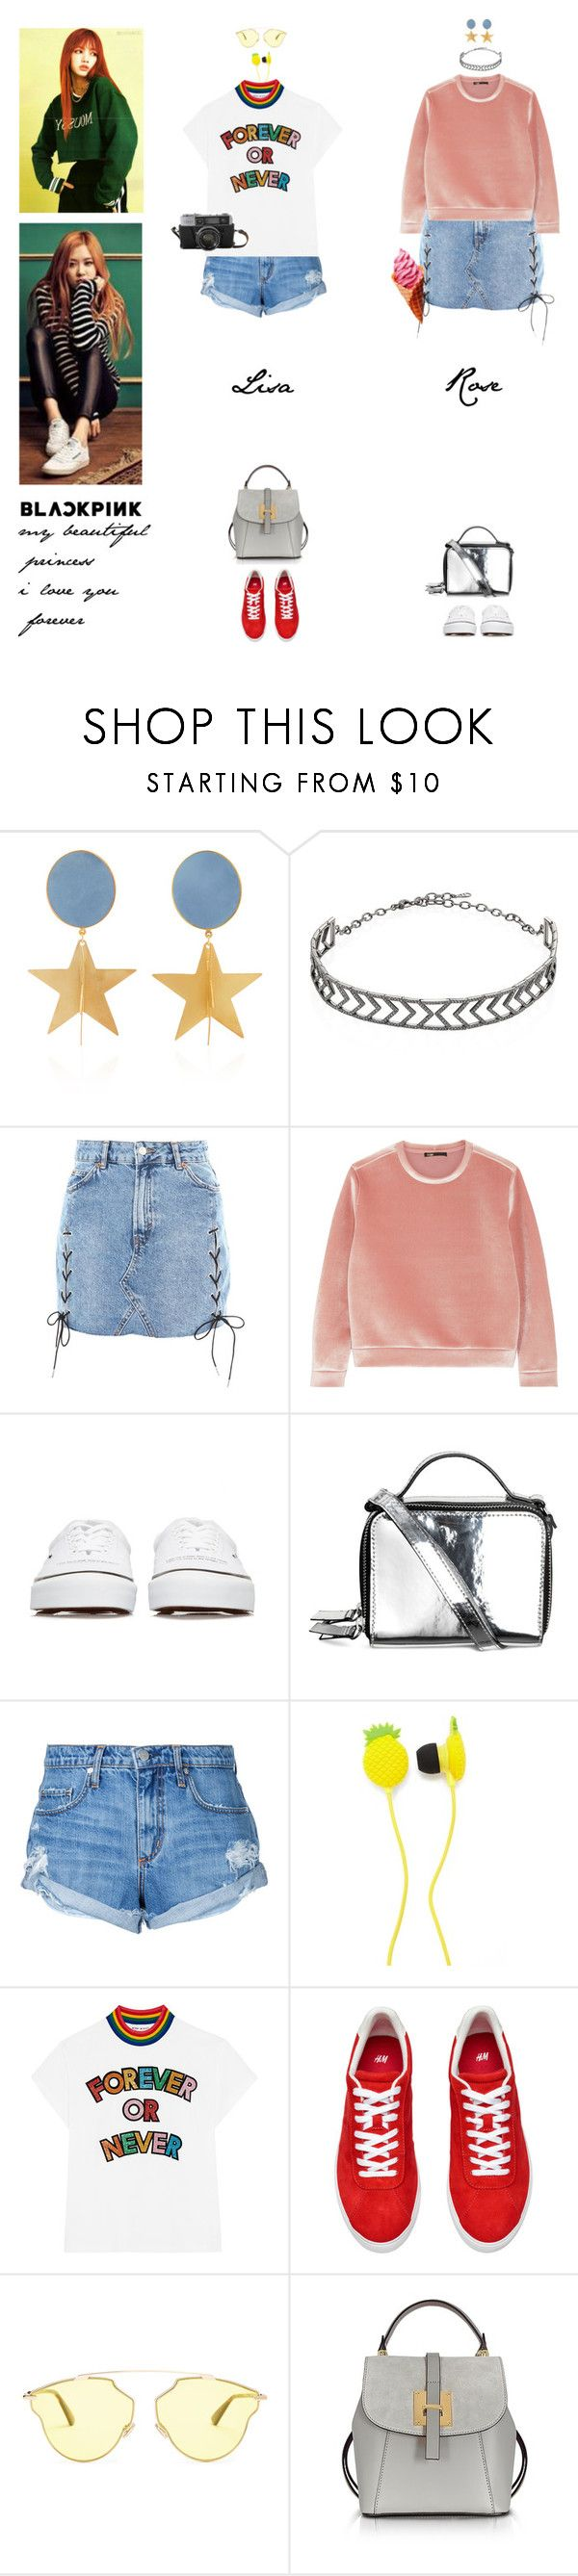 """""""CHAELIS this week"""" by www-som ❤ liked on Polyvore featuring Silhouette, Adriana Orsini, Topshop, Maje, Undercover, Lime Crime, Nobody Denim, Forever 21, Mira Mikati and Christian Dior"""